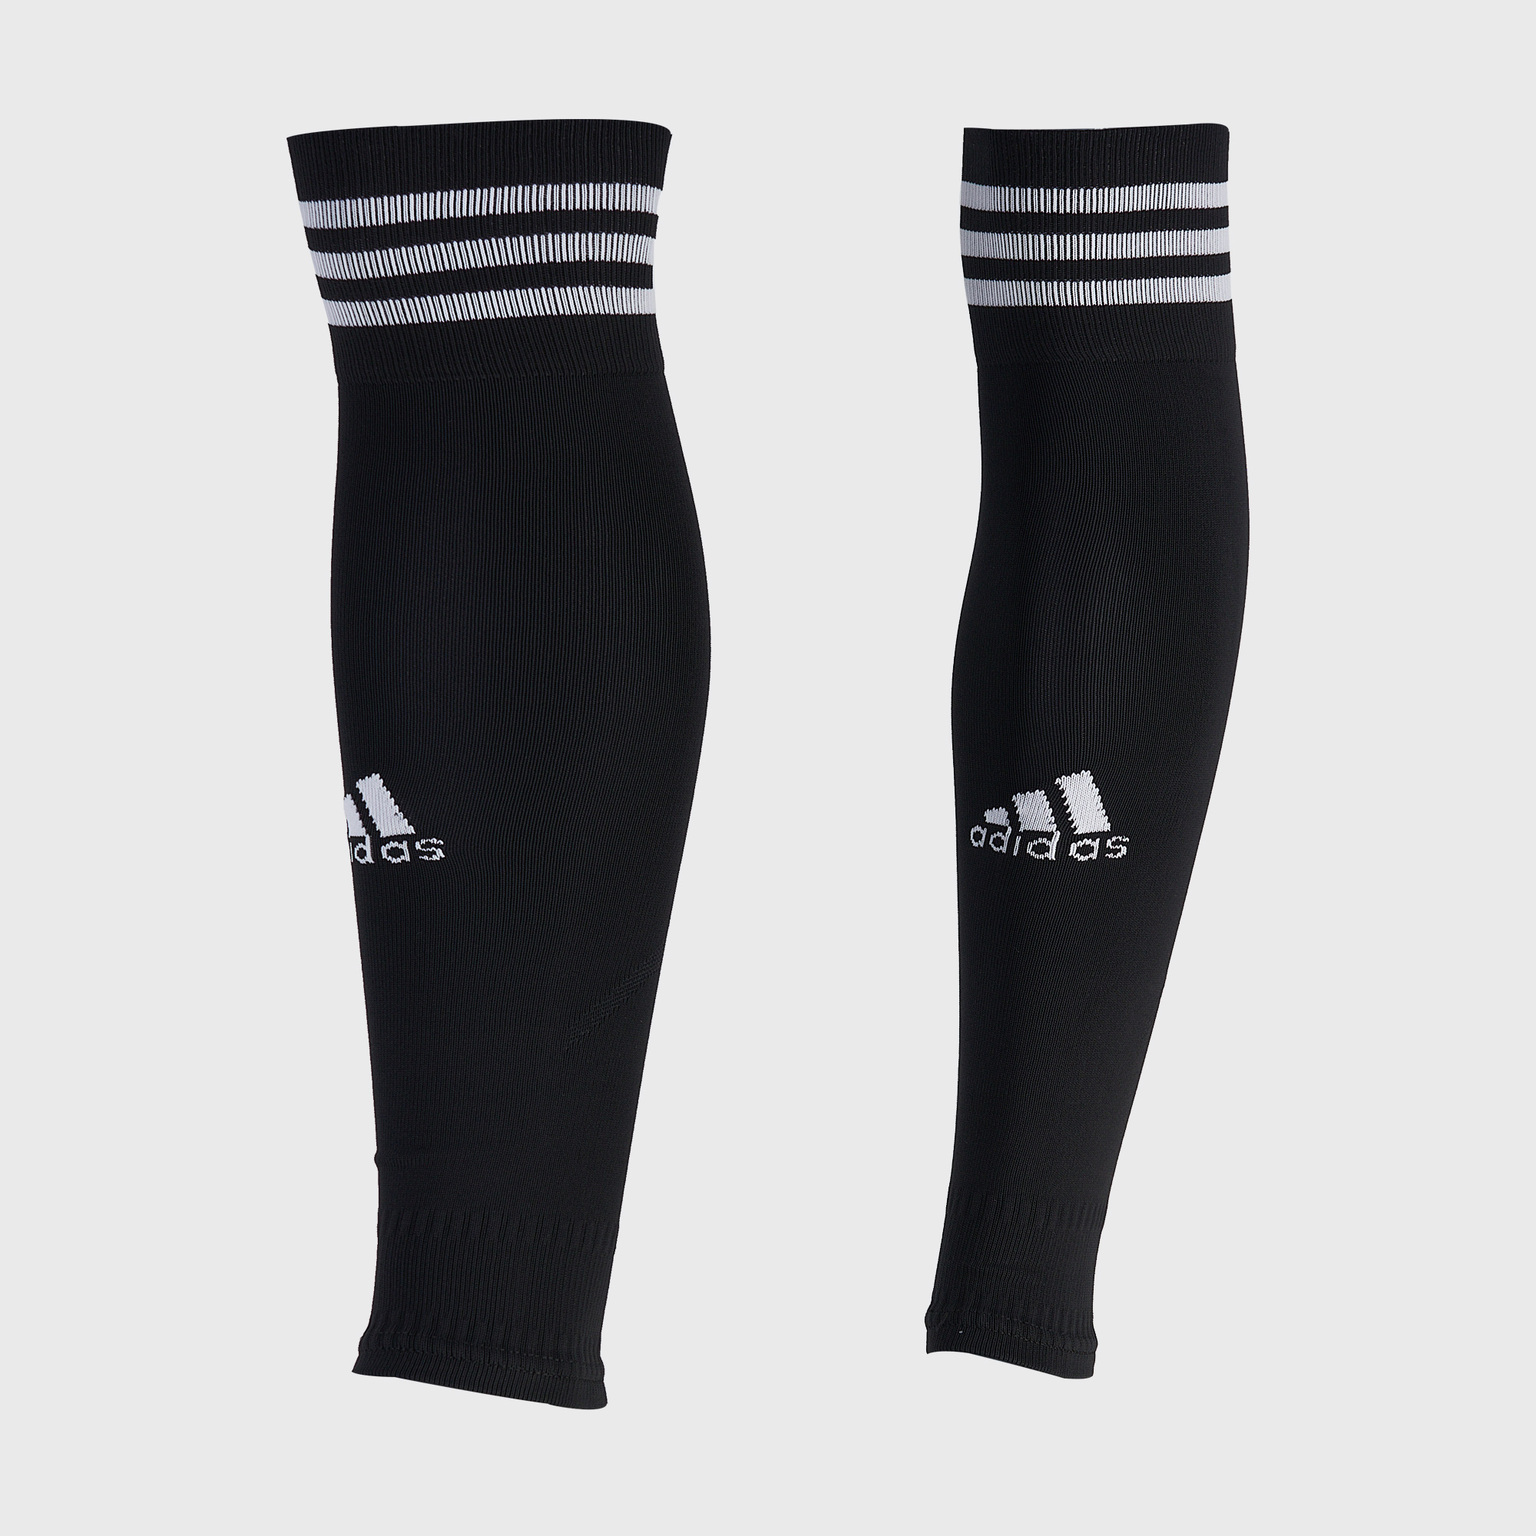 Гетры Adidas Team Sleeve 18 CV7522